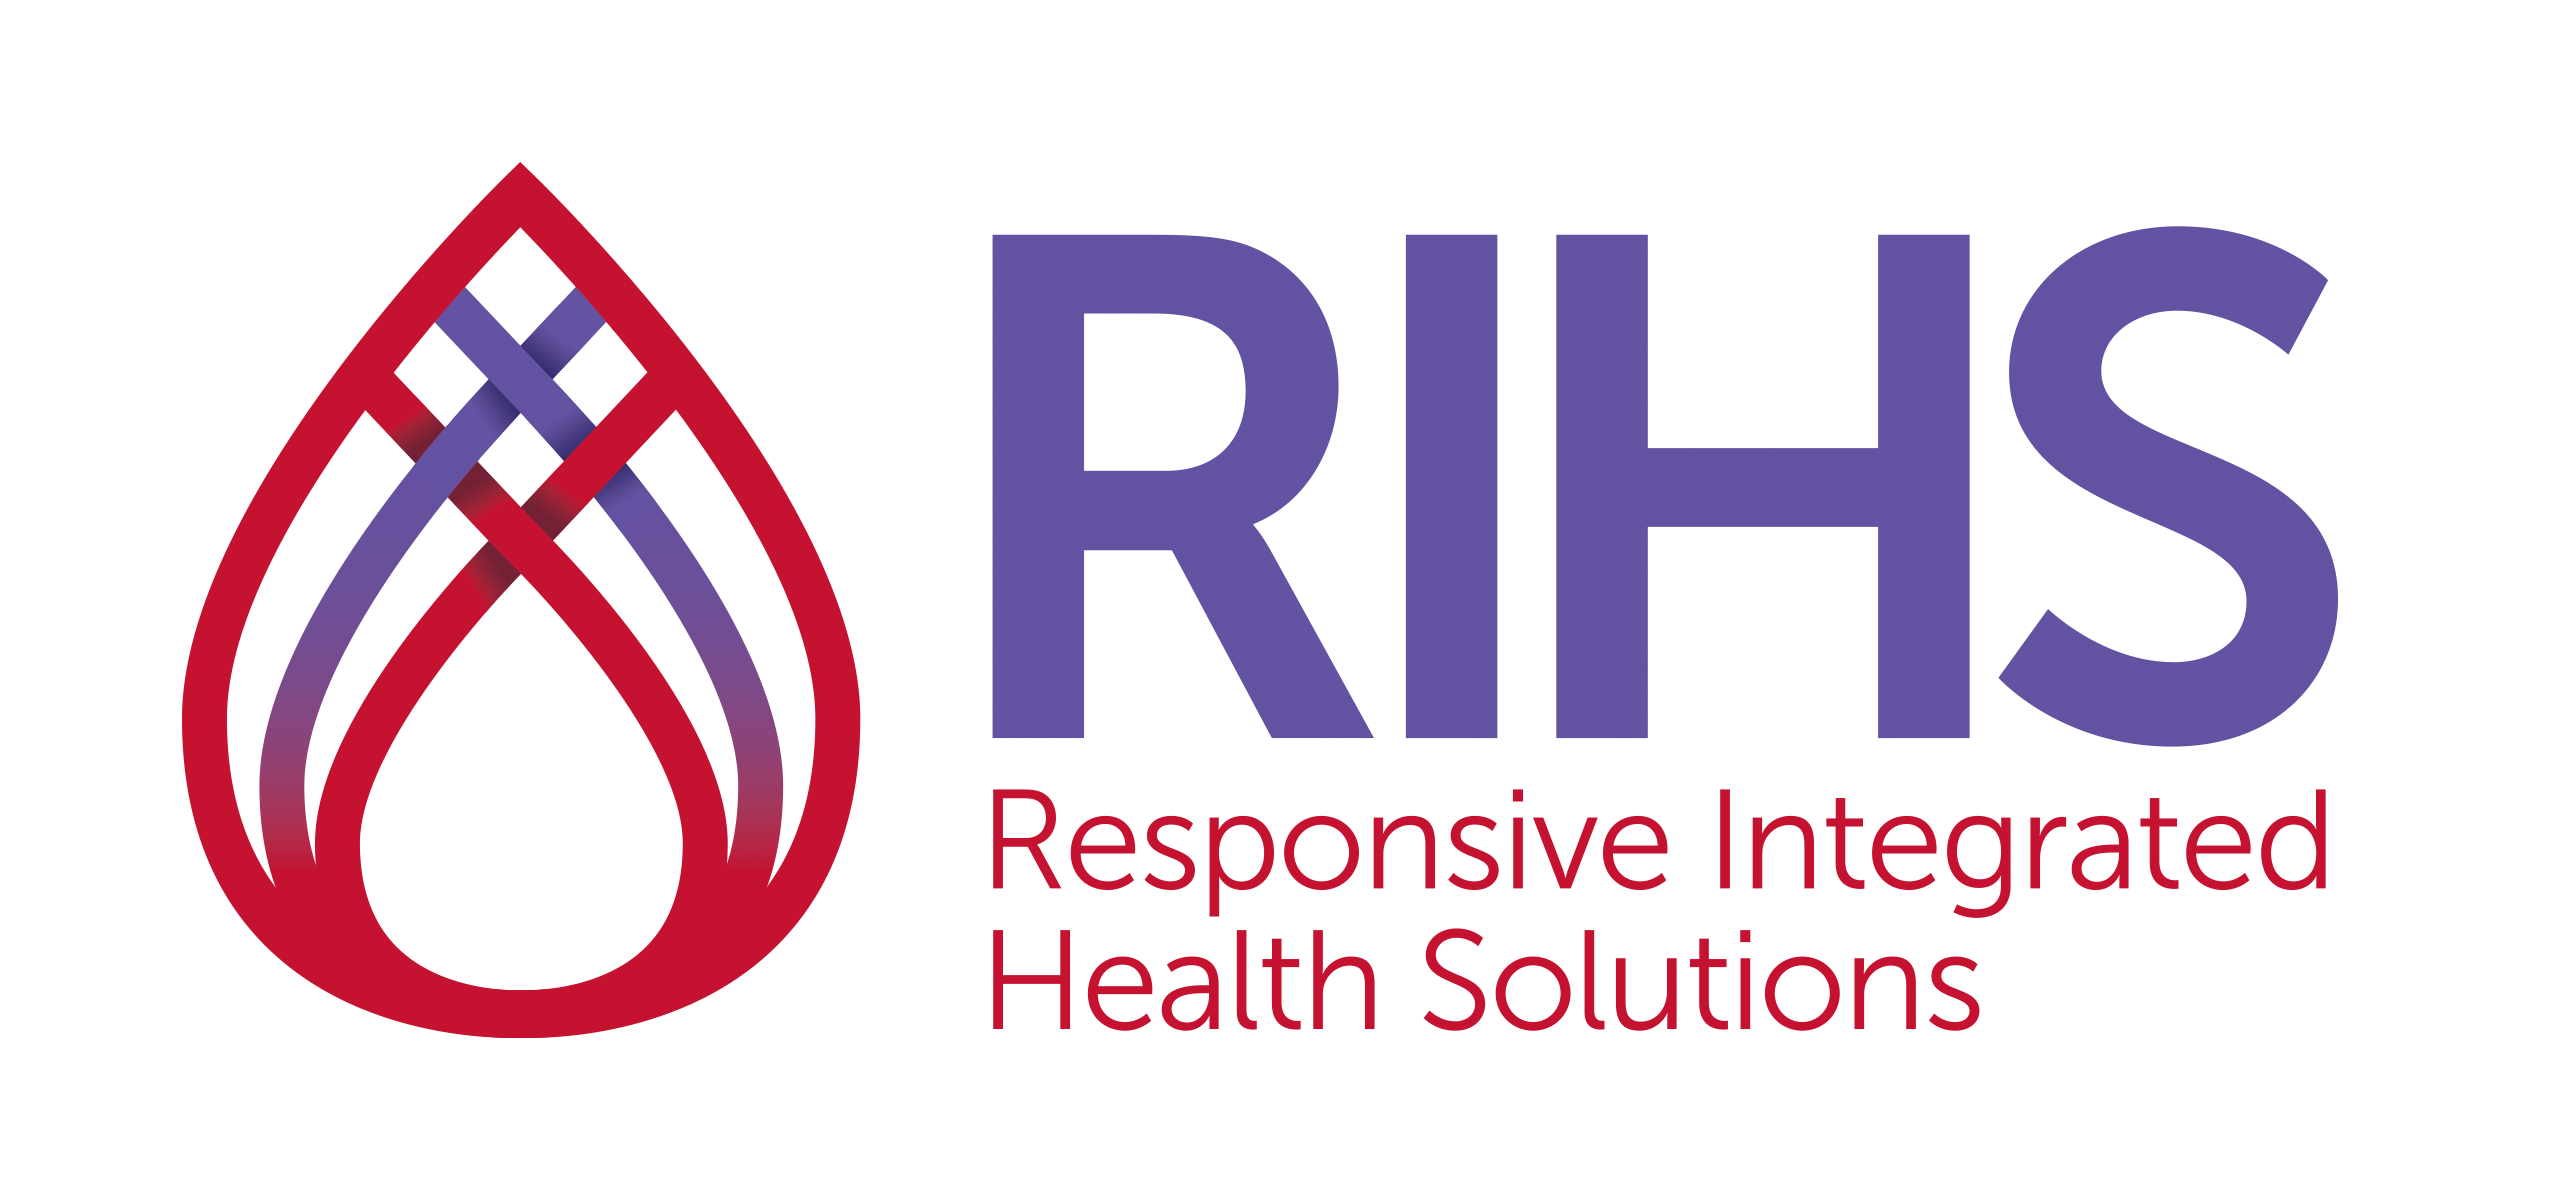 RIHS - Responsive Integrated Health Solutions Logo